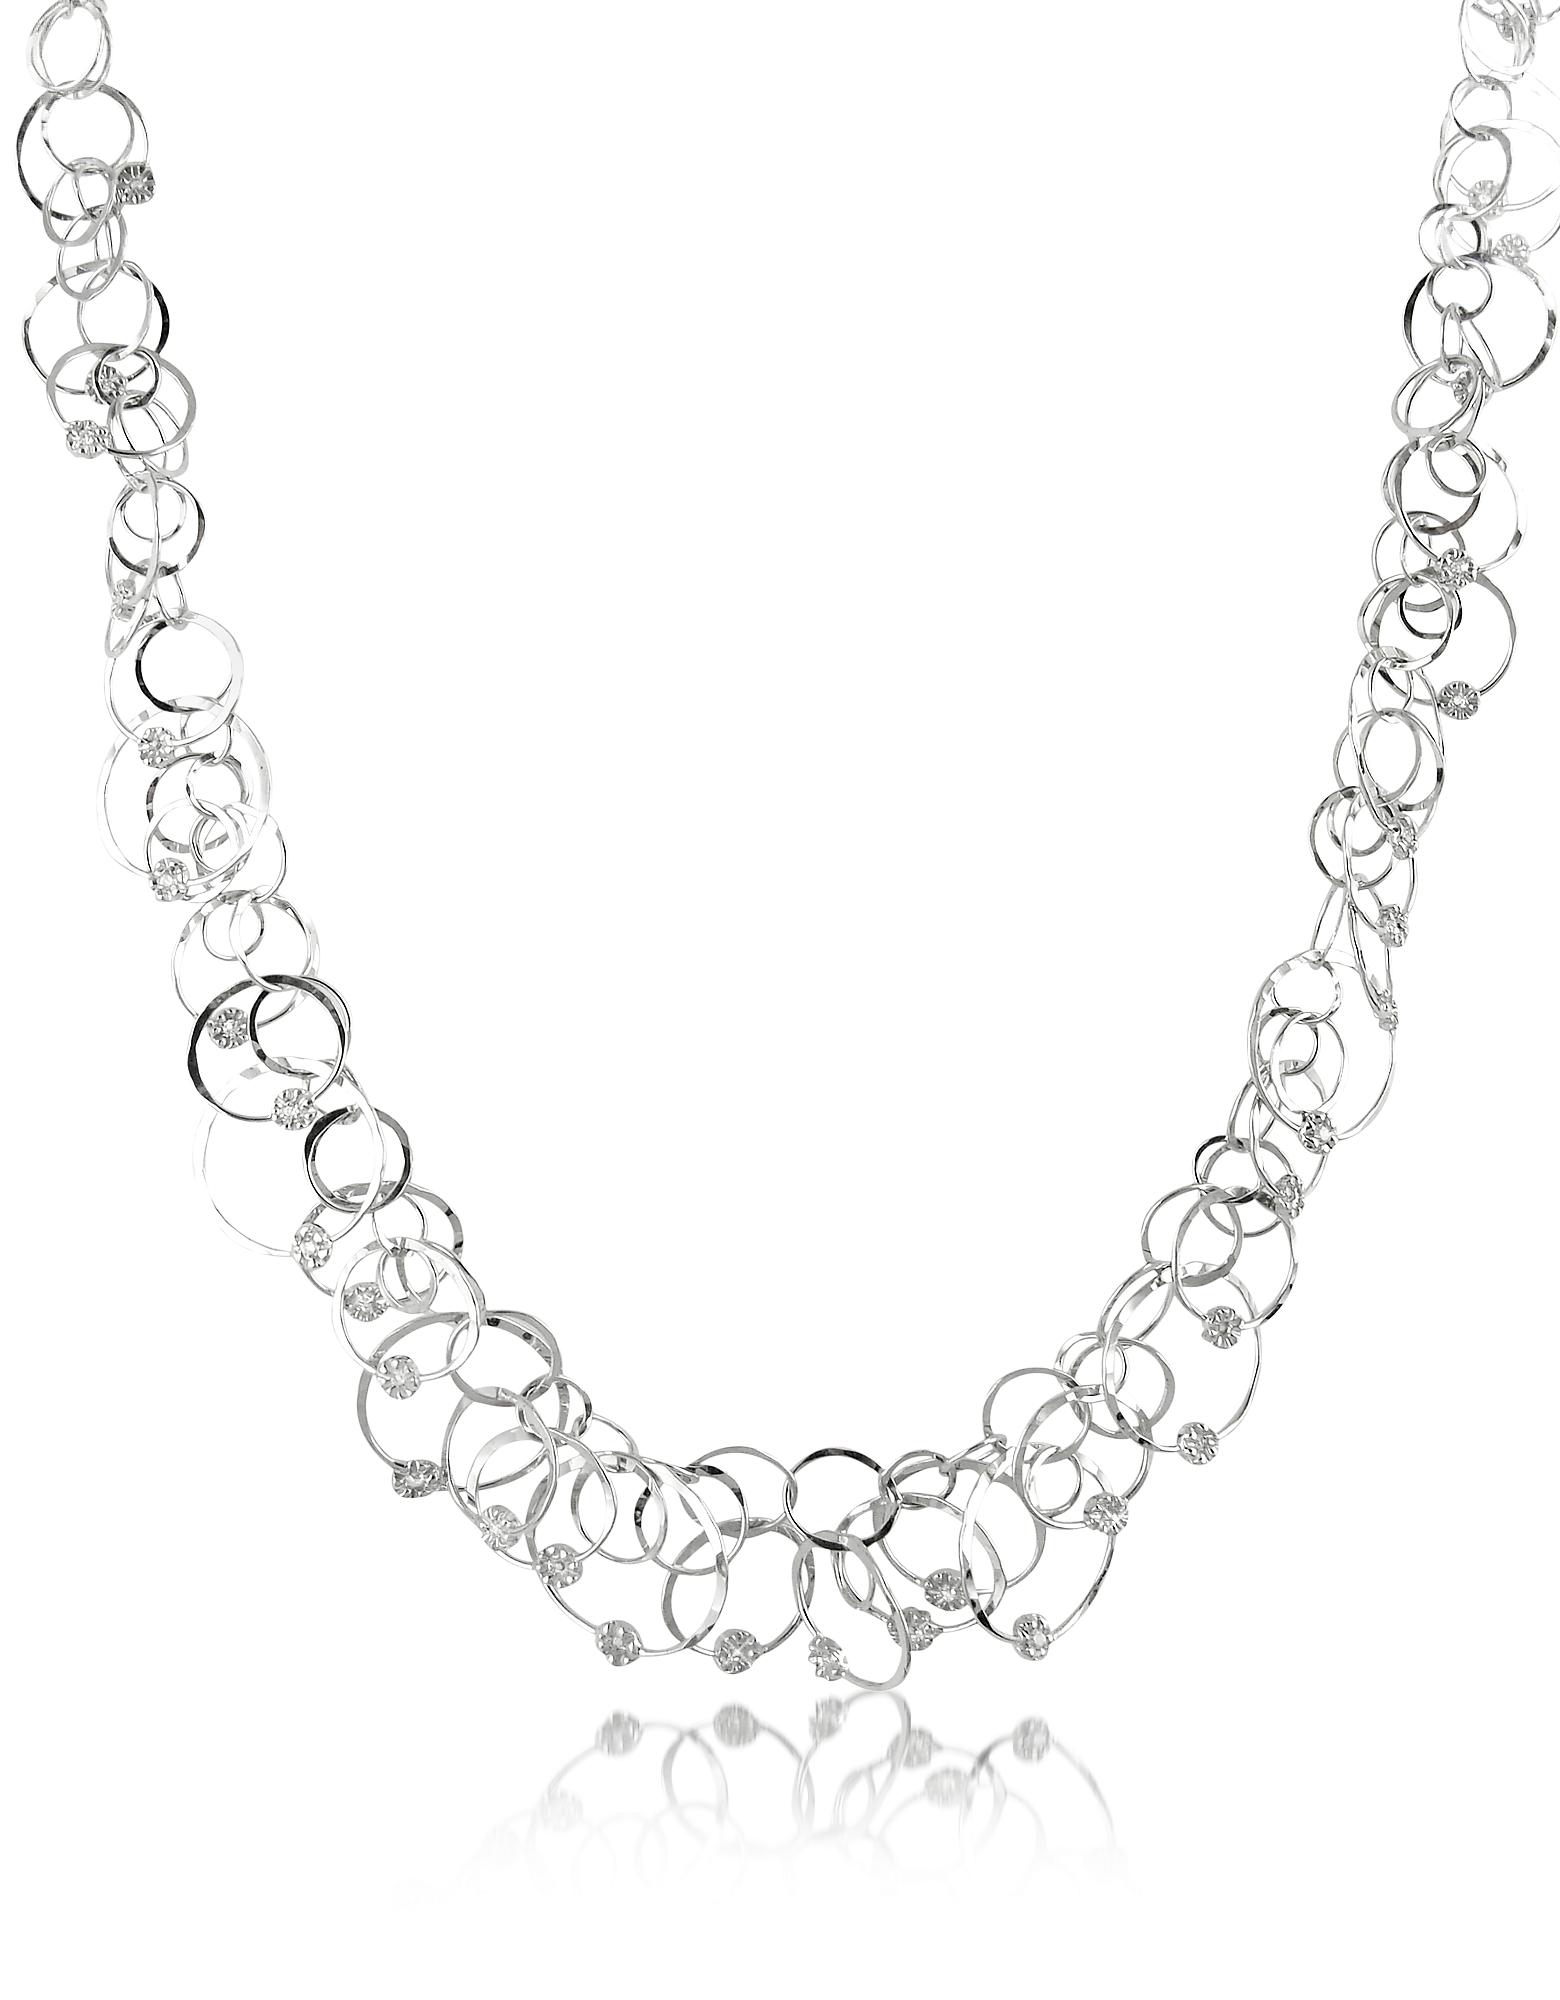 Orlando Orlandini Necklaces, Scintille Anniversary - Diamond 18K White Gold Chain Necklace